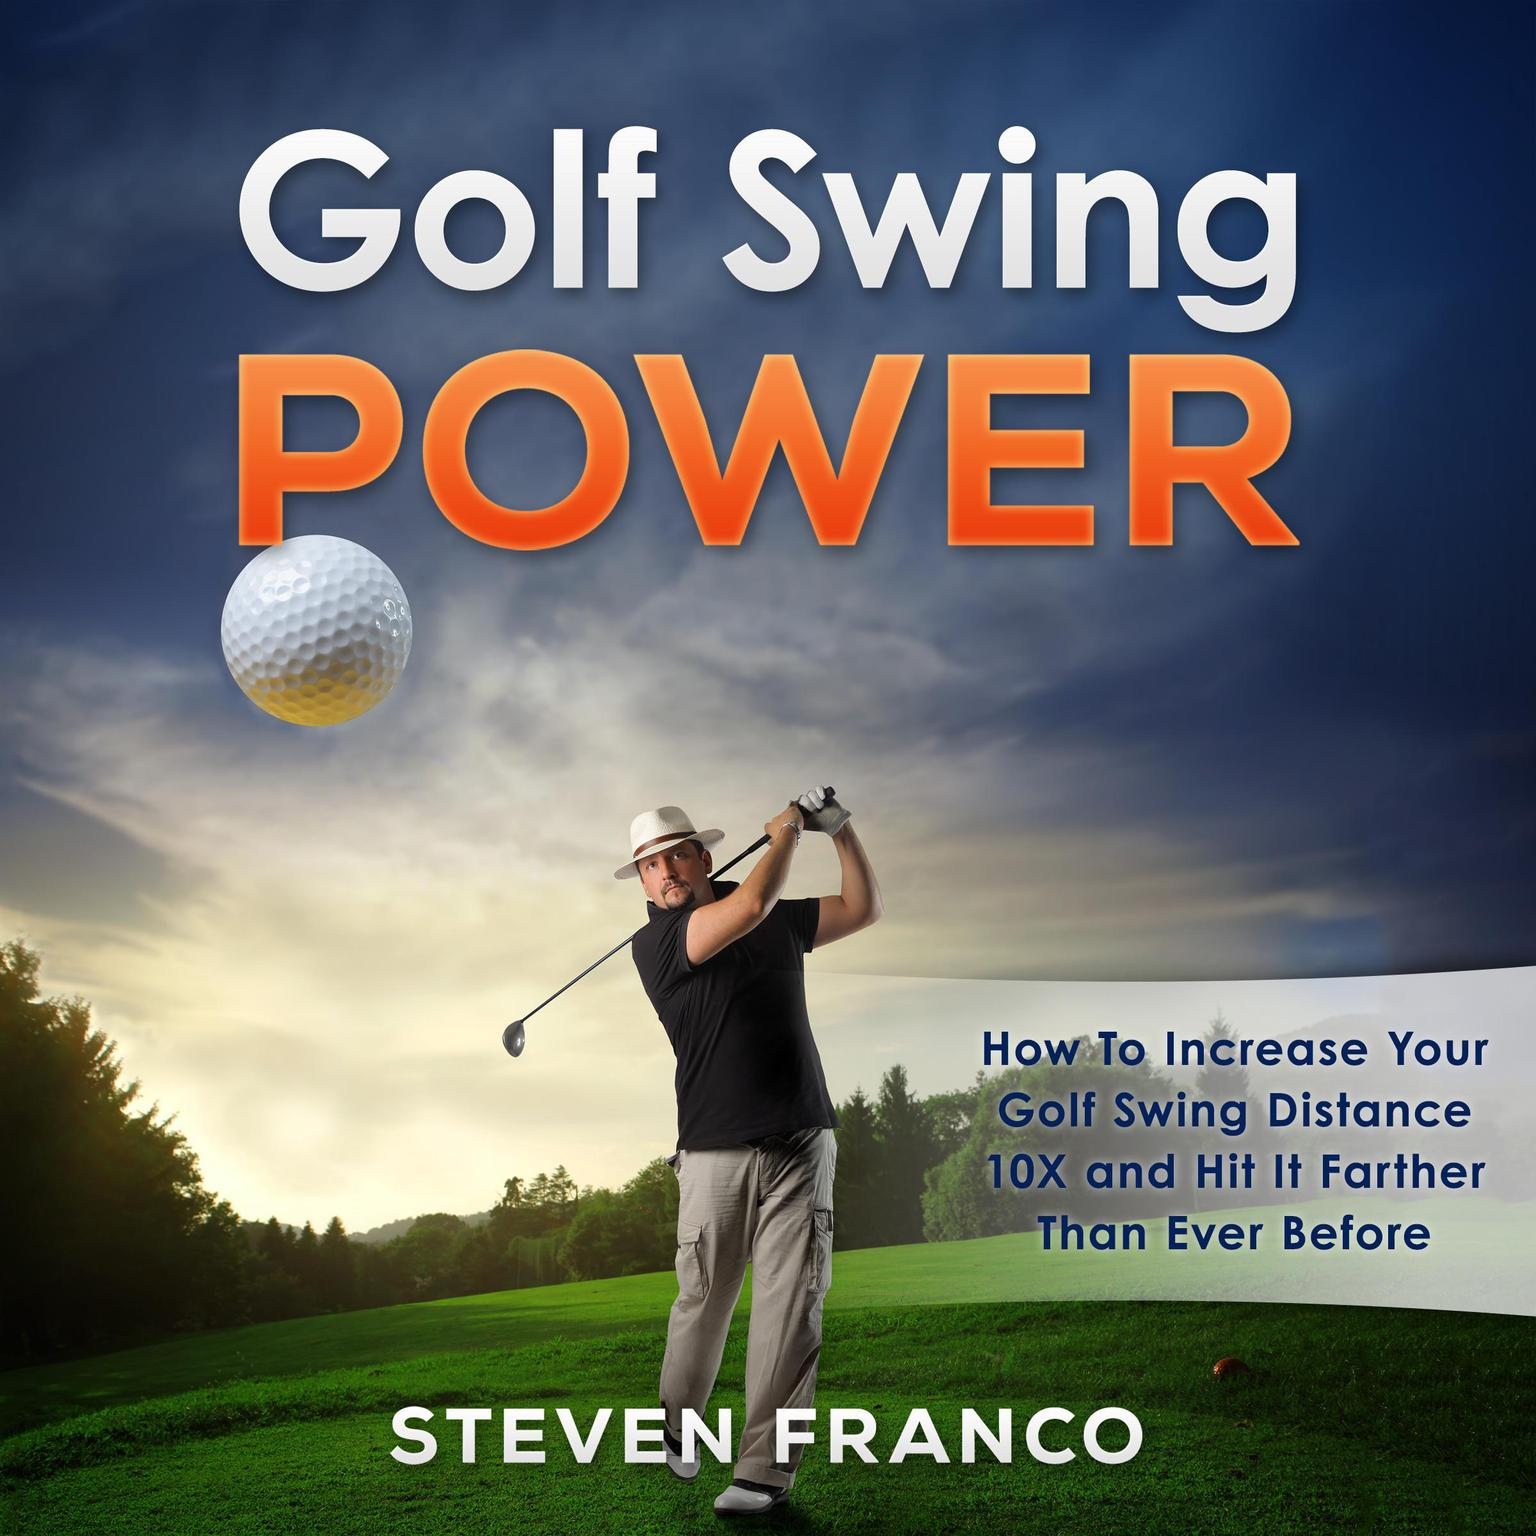 Printable Golf: Swing Power - How to Increase Your Golf Swing Distance 10X and Hit it Farther than Ever Before Audiobook Cover Art